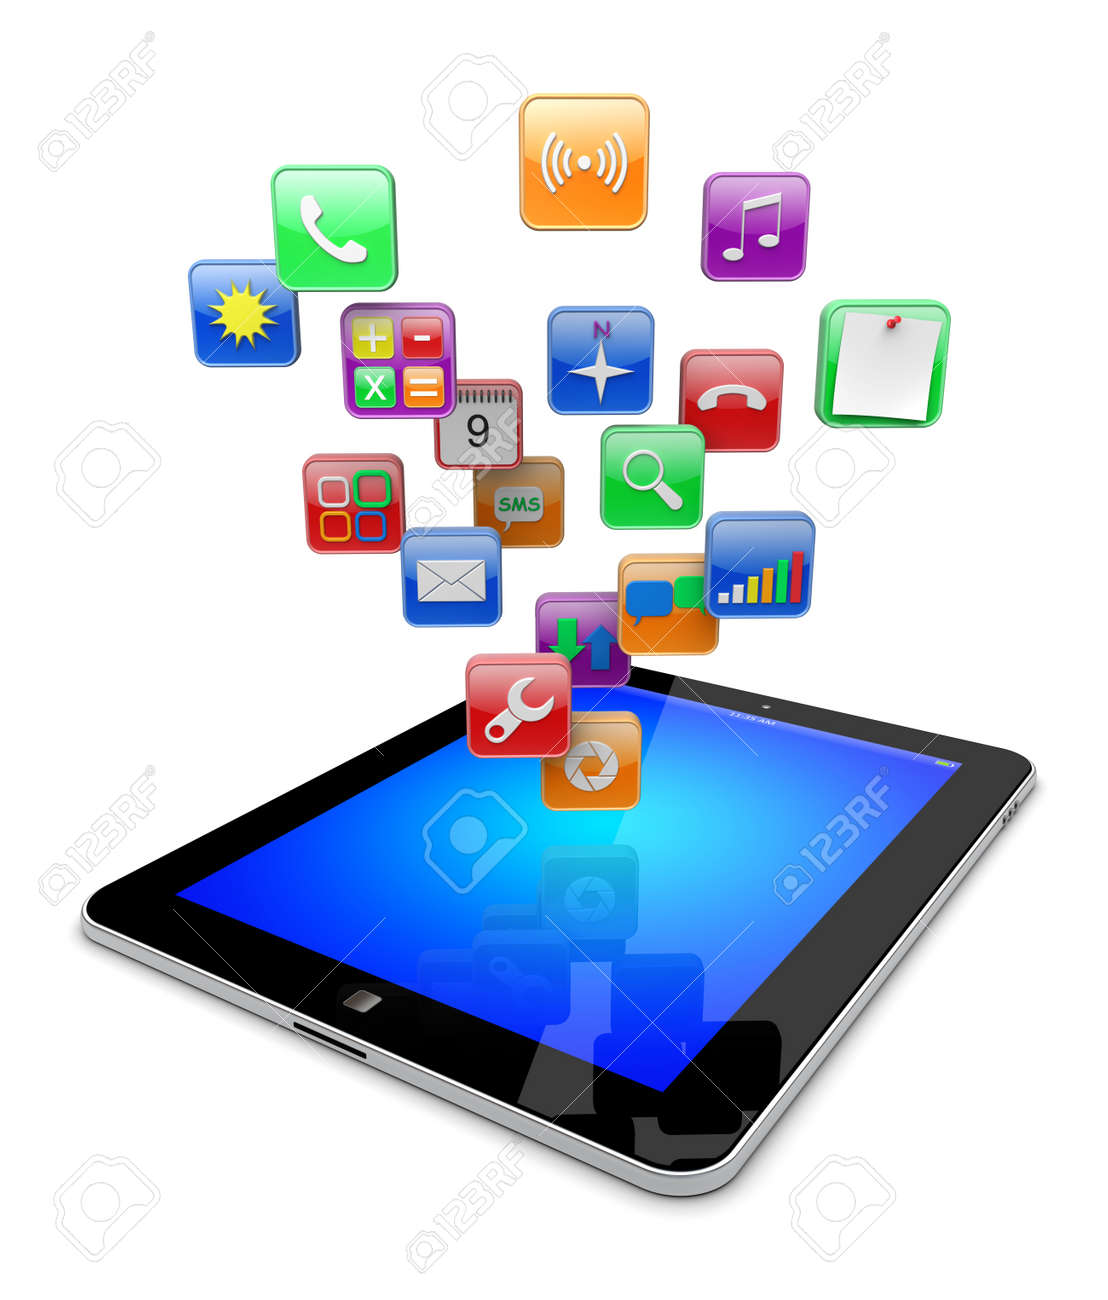 tablet pc computer with software apps icons media technology